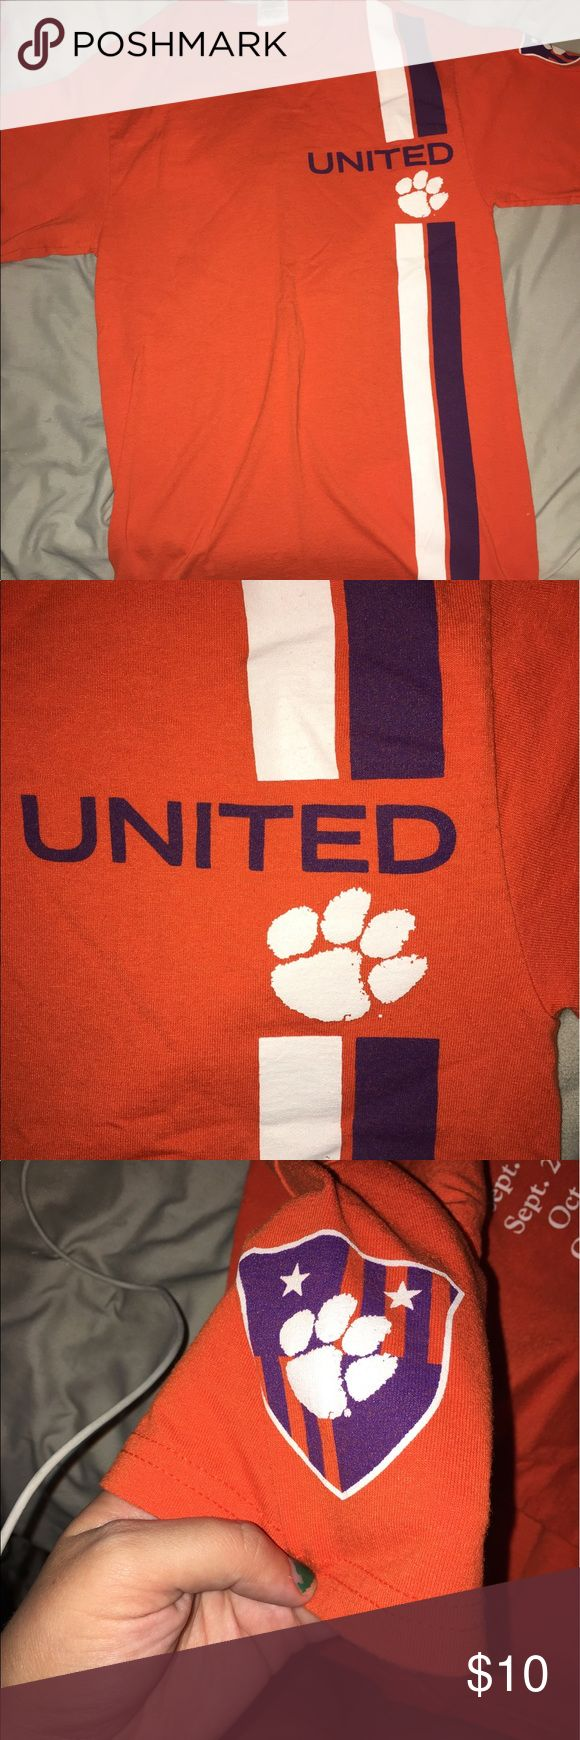 Clemson Soccer Shirt Clemson United Men's 2013 Soccer Team with schedule on back. Short sleeves. Great condition. No trades. Make me a reasonable offer! Jerzees Shirts Tees - Short Sleeve